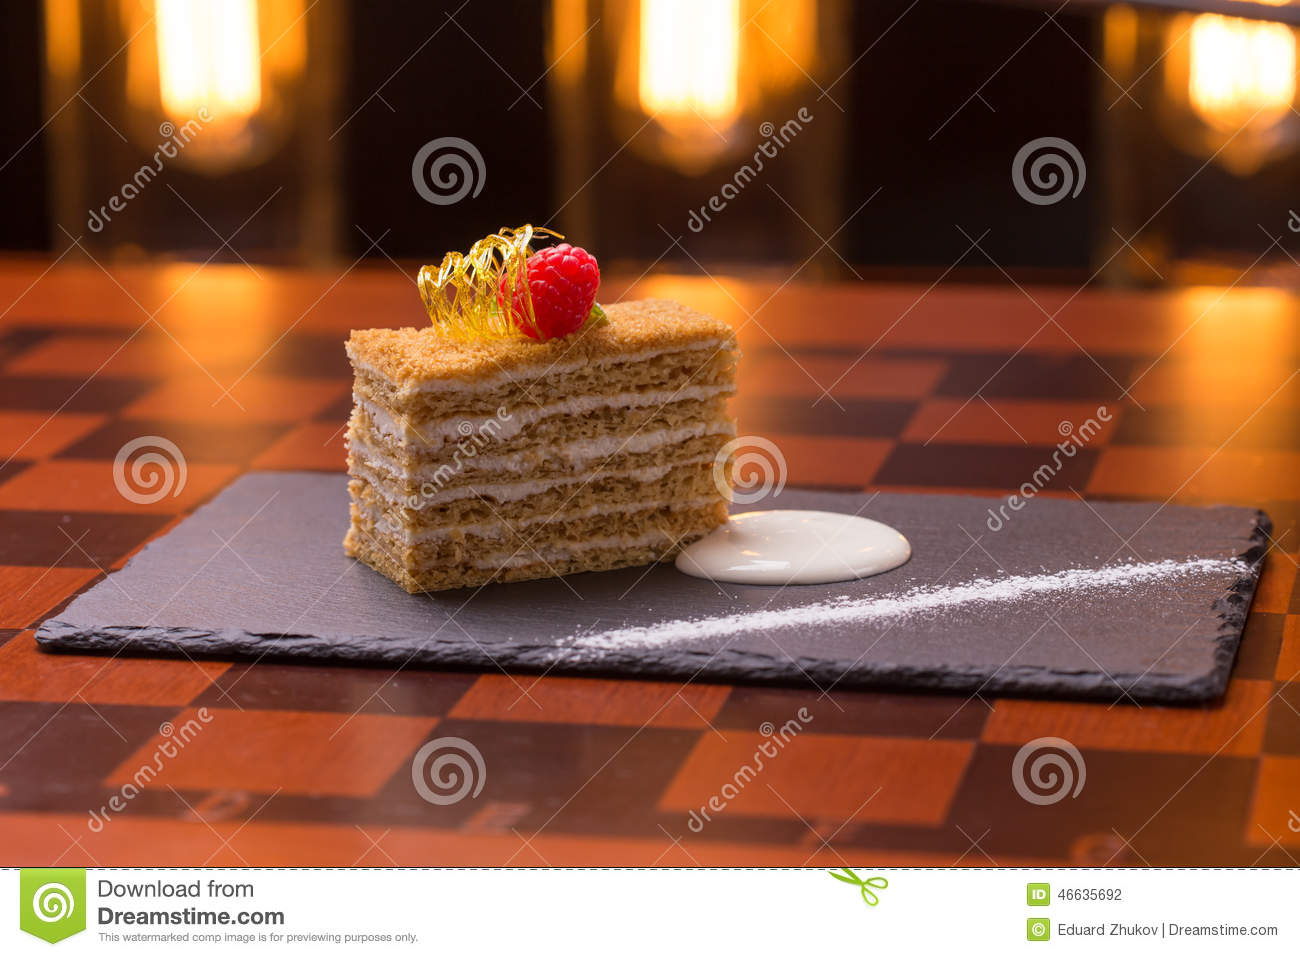 Clipart Of Honey Cake : Honey Cake Stock Photo - Image: 46635692